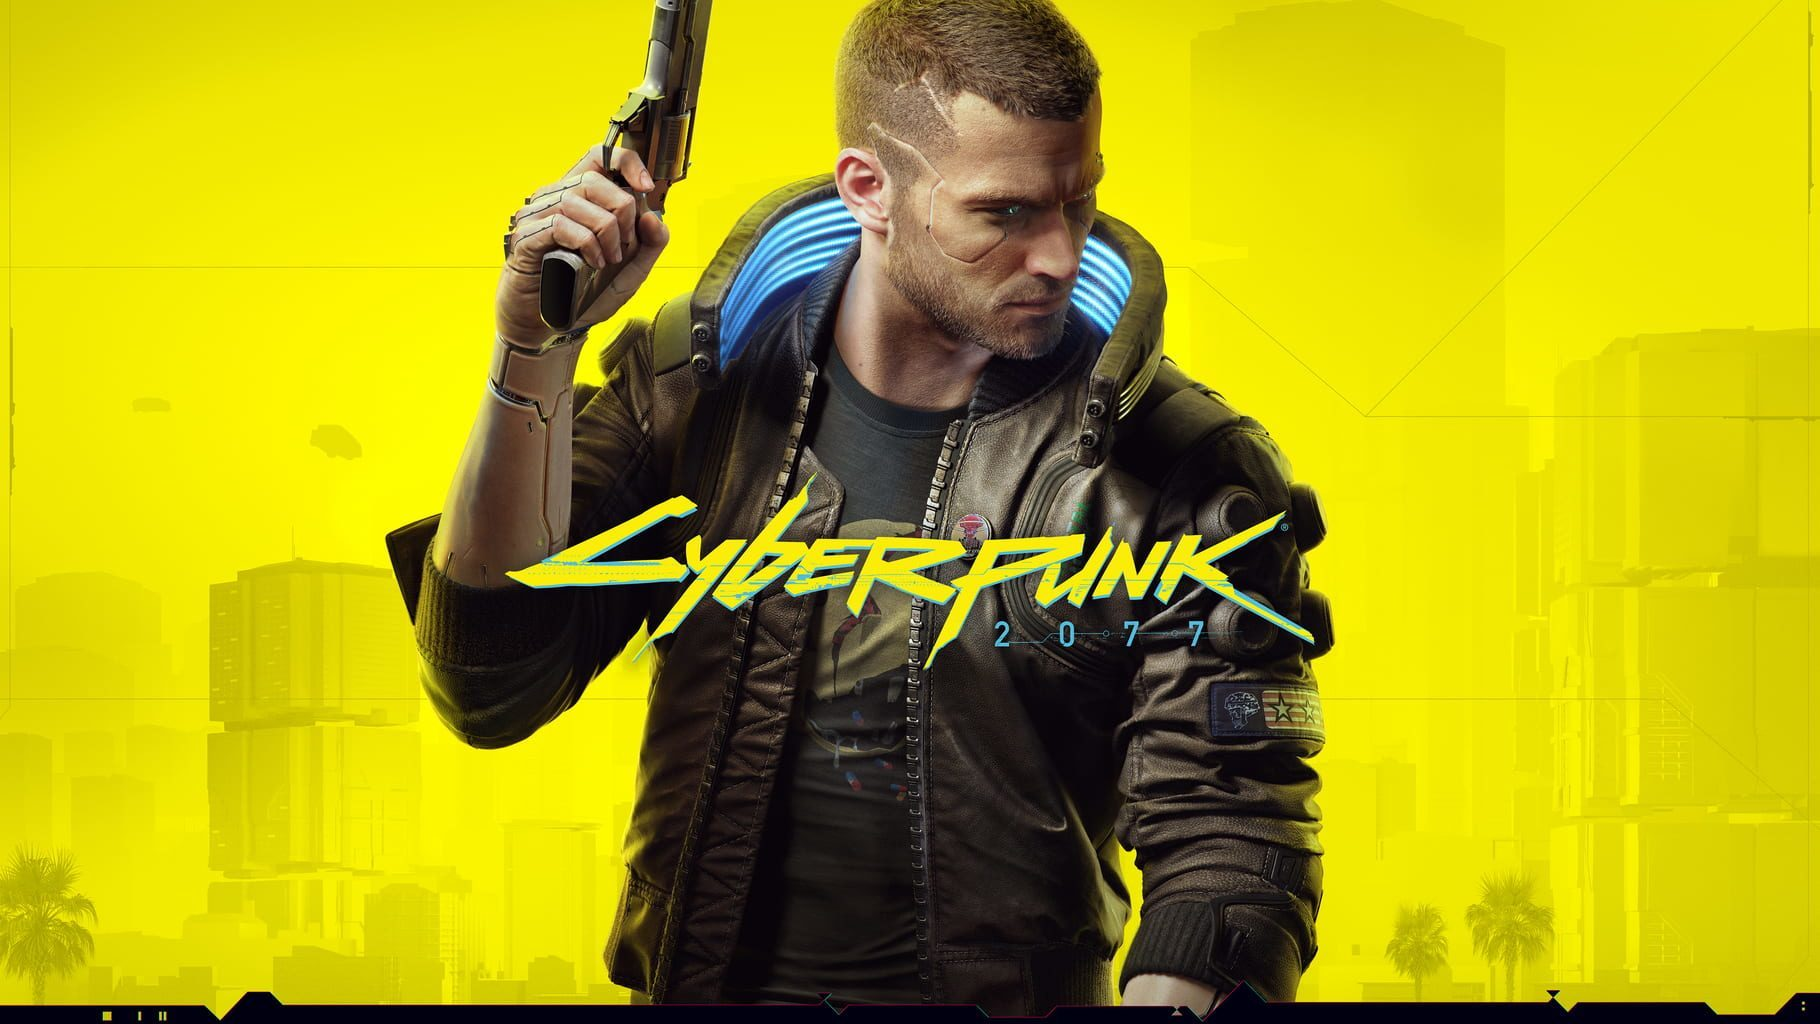 The makers Cyberpunk 2077 have been hit by a major cyberattack